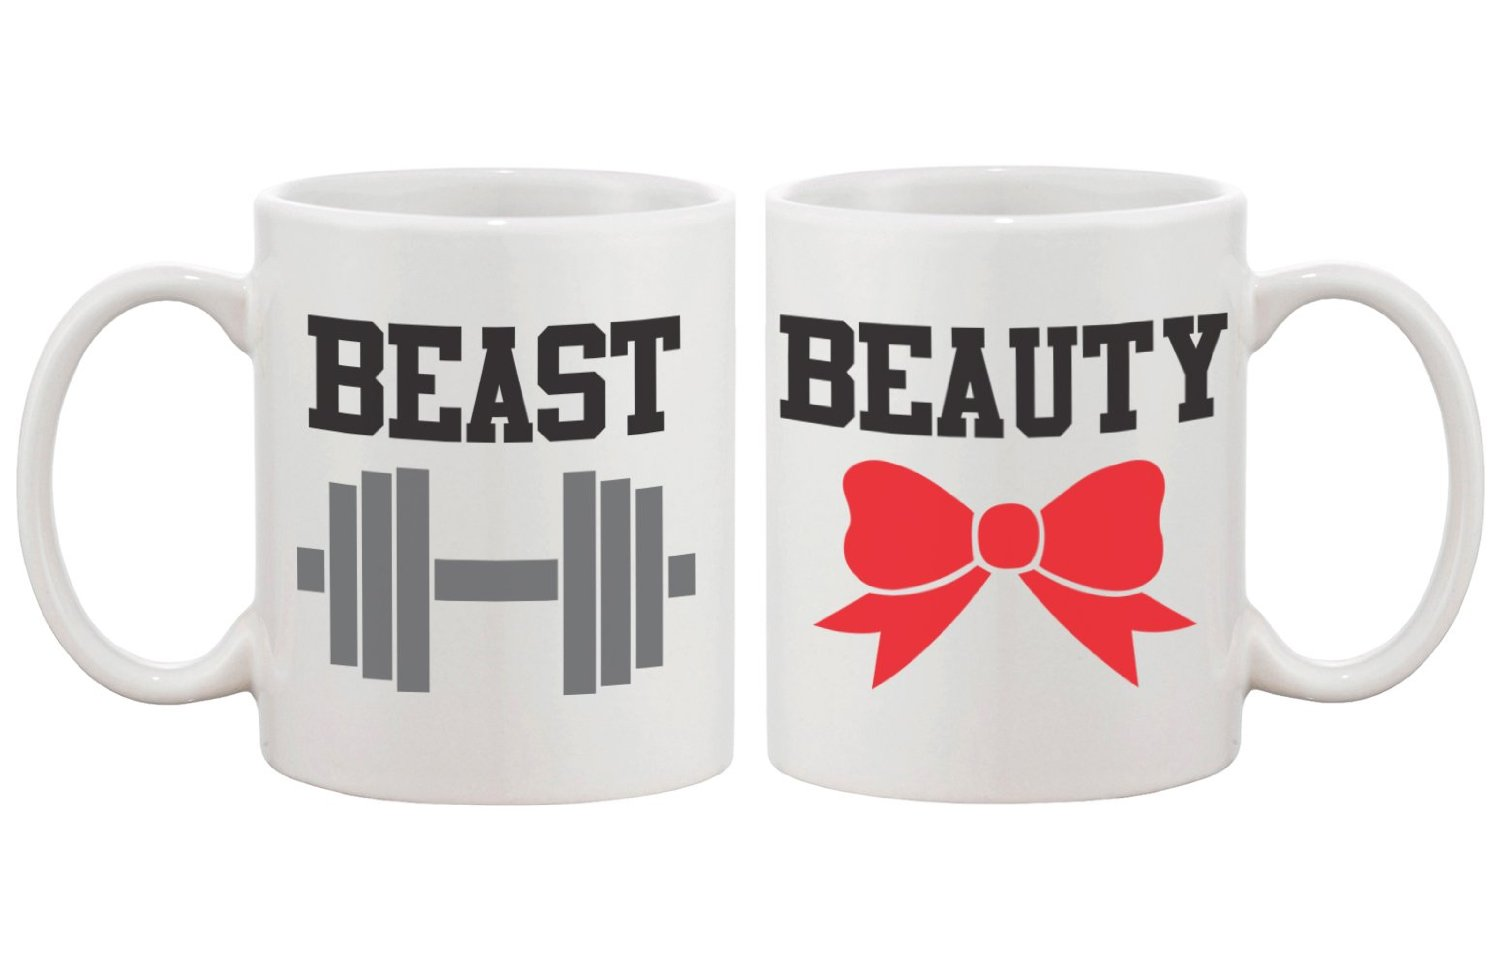 amazoncom beauty and beast matching coffee mugs perfect wedding engagement anniversary and valentines day gift for